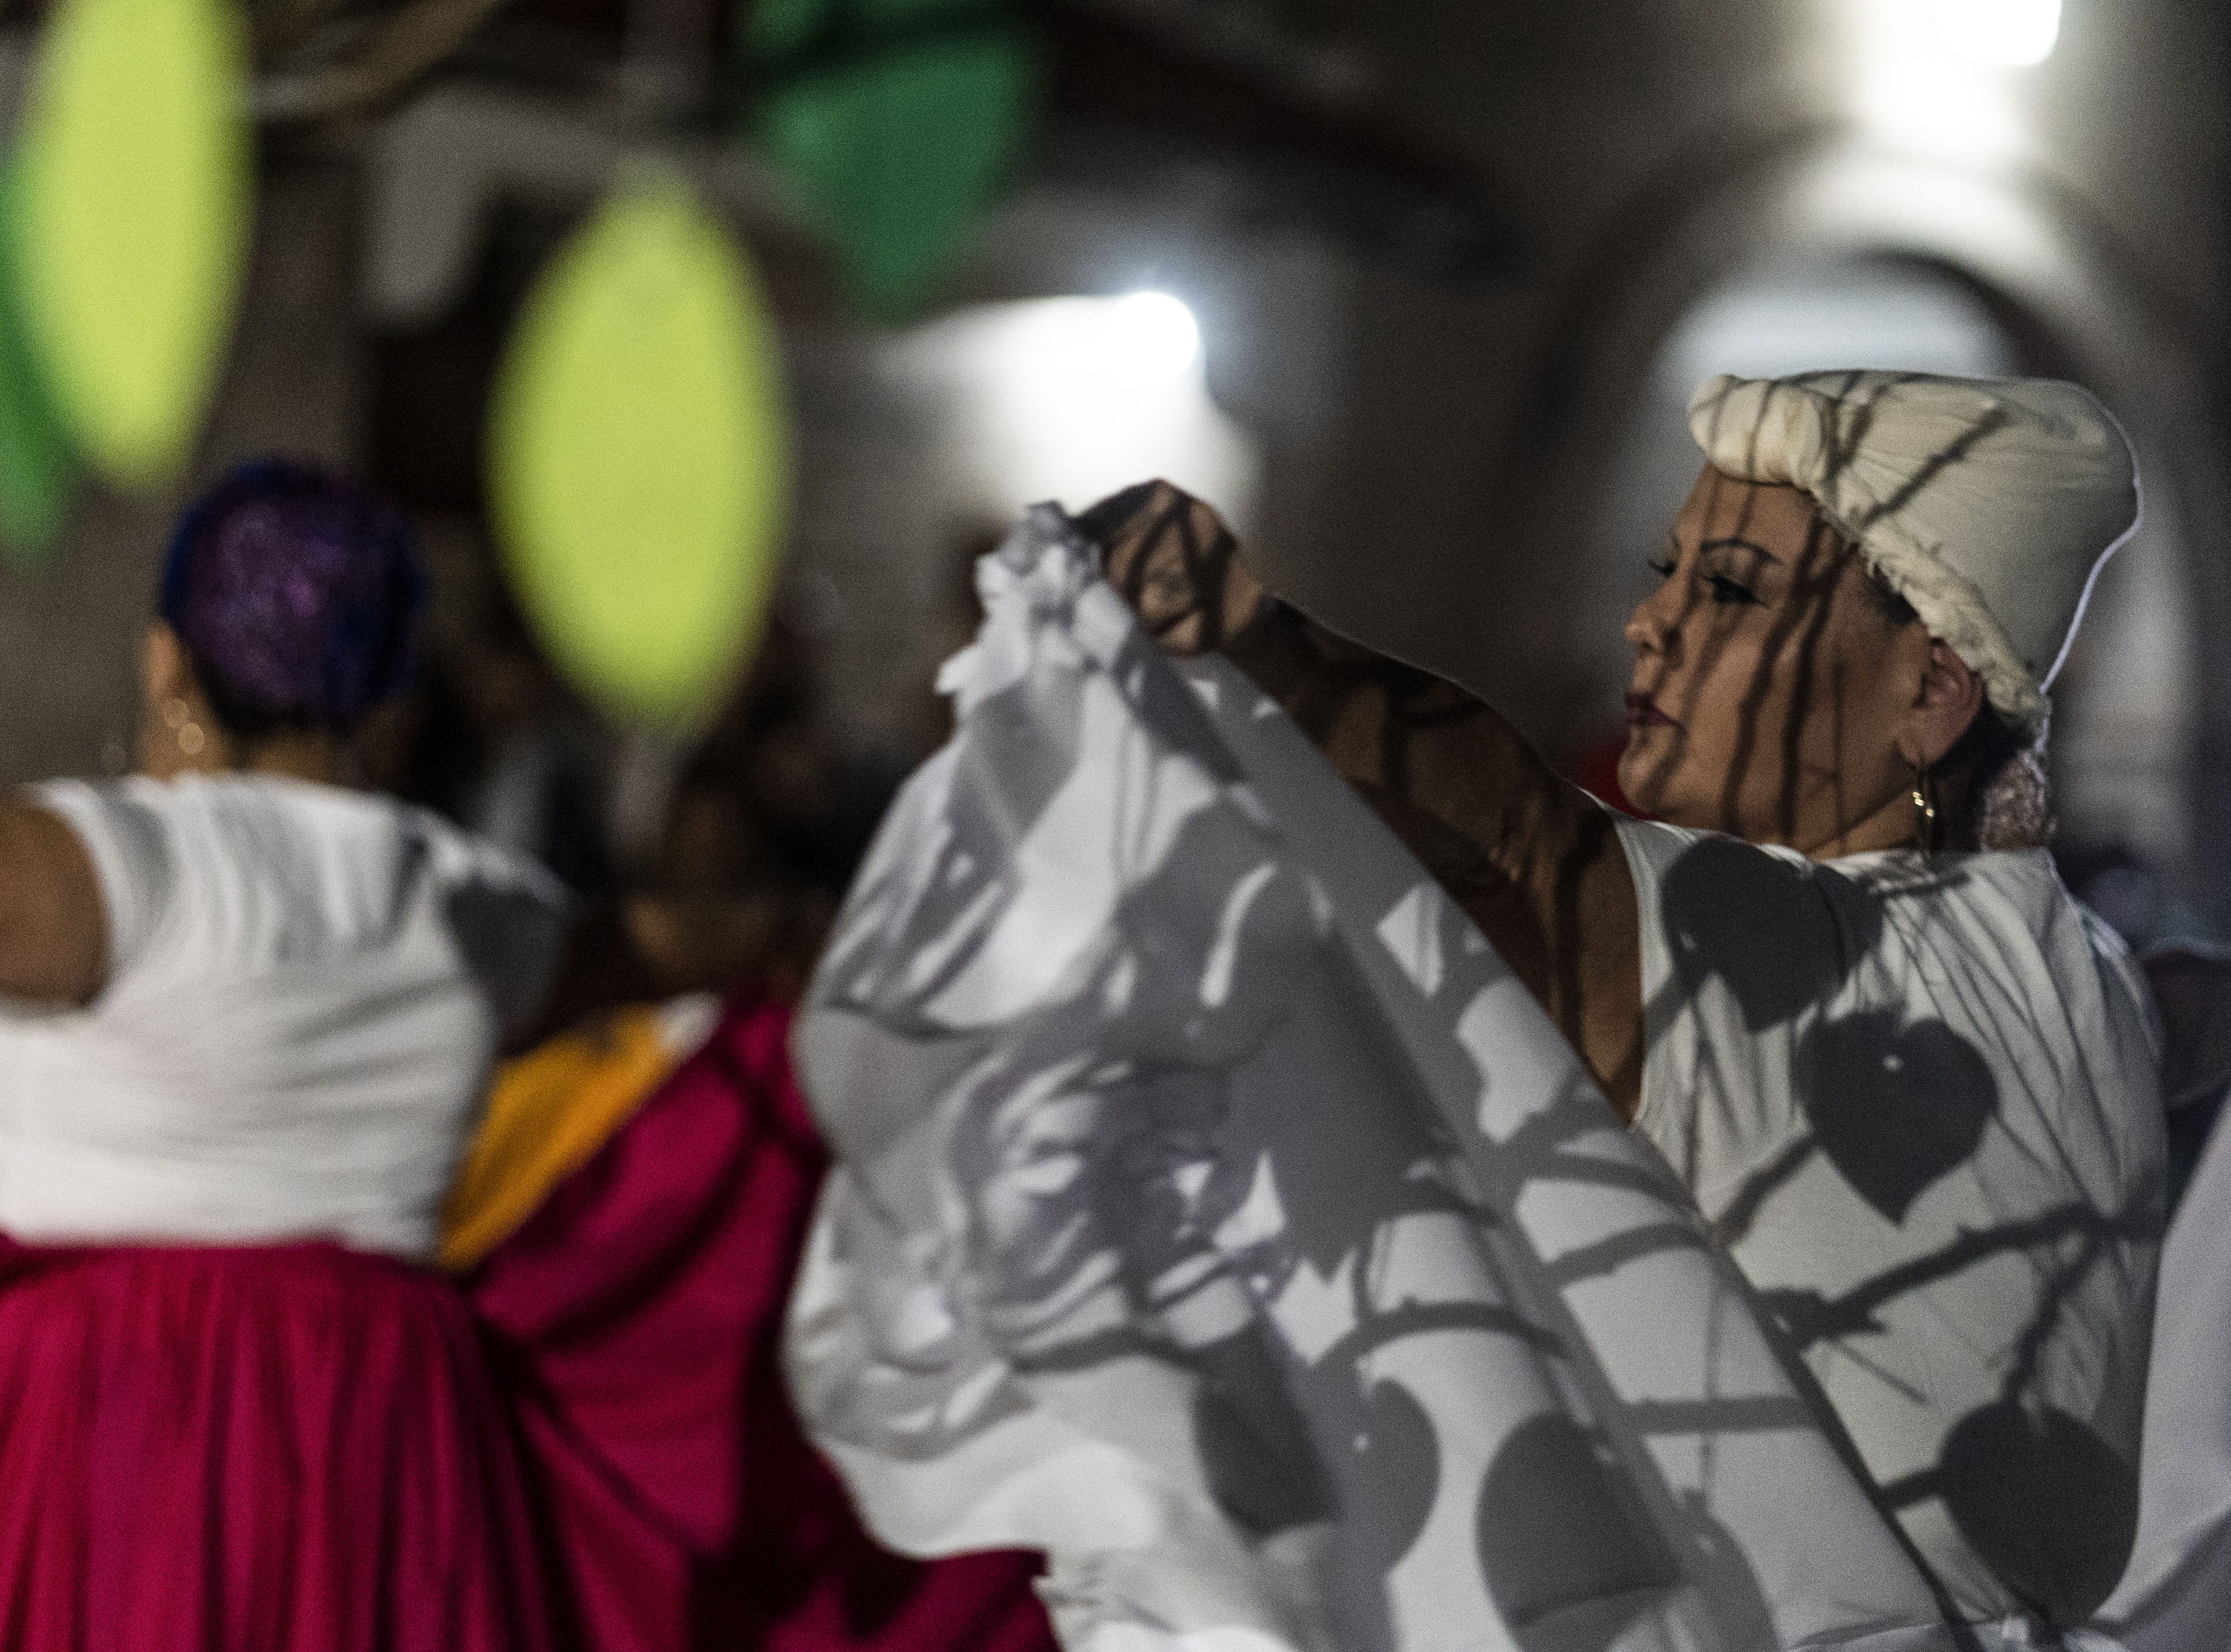 Puerto Ricans marked the anniversary of Hurricane Maria by writing notes on pieces of green paper shaped like leaves and hanging them on a prayer tree in the courtyard of Faith Evangelical Lutheran Church in Phoenix. The leaves cast shadows on folkloric dancers who performed at the end of the three-hour service.